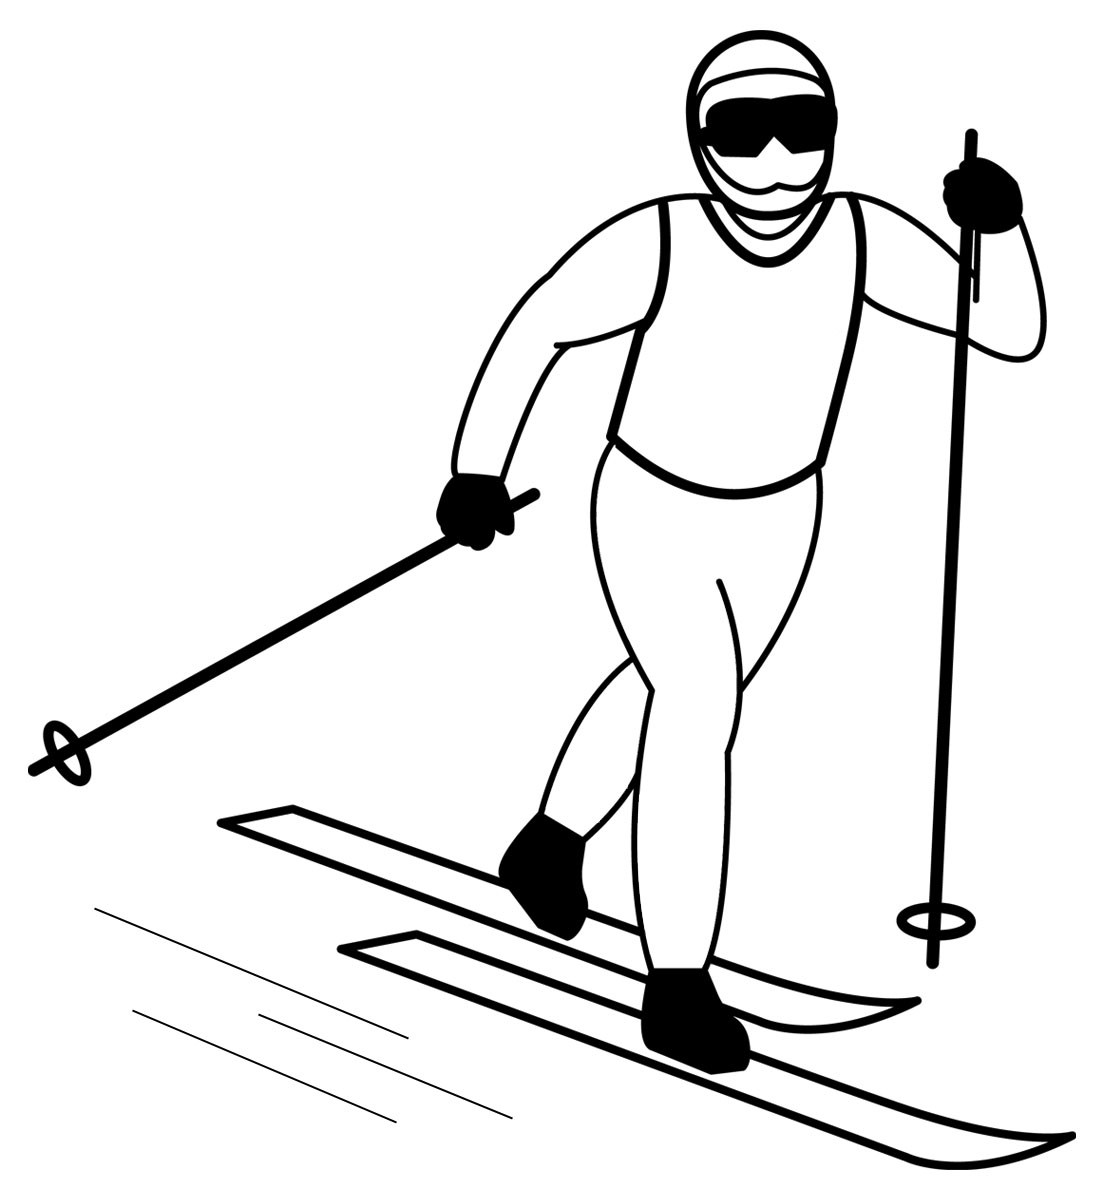 Cross country skier clipart black and white png Ski clipart black and white 2 » Clipart Portal png